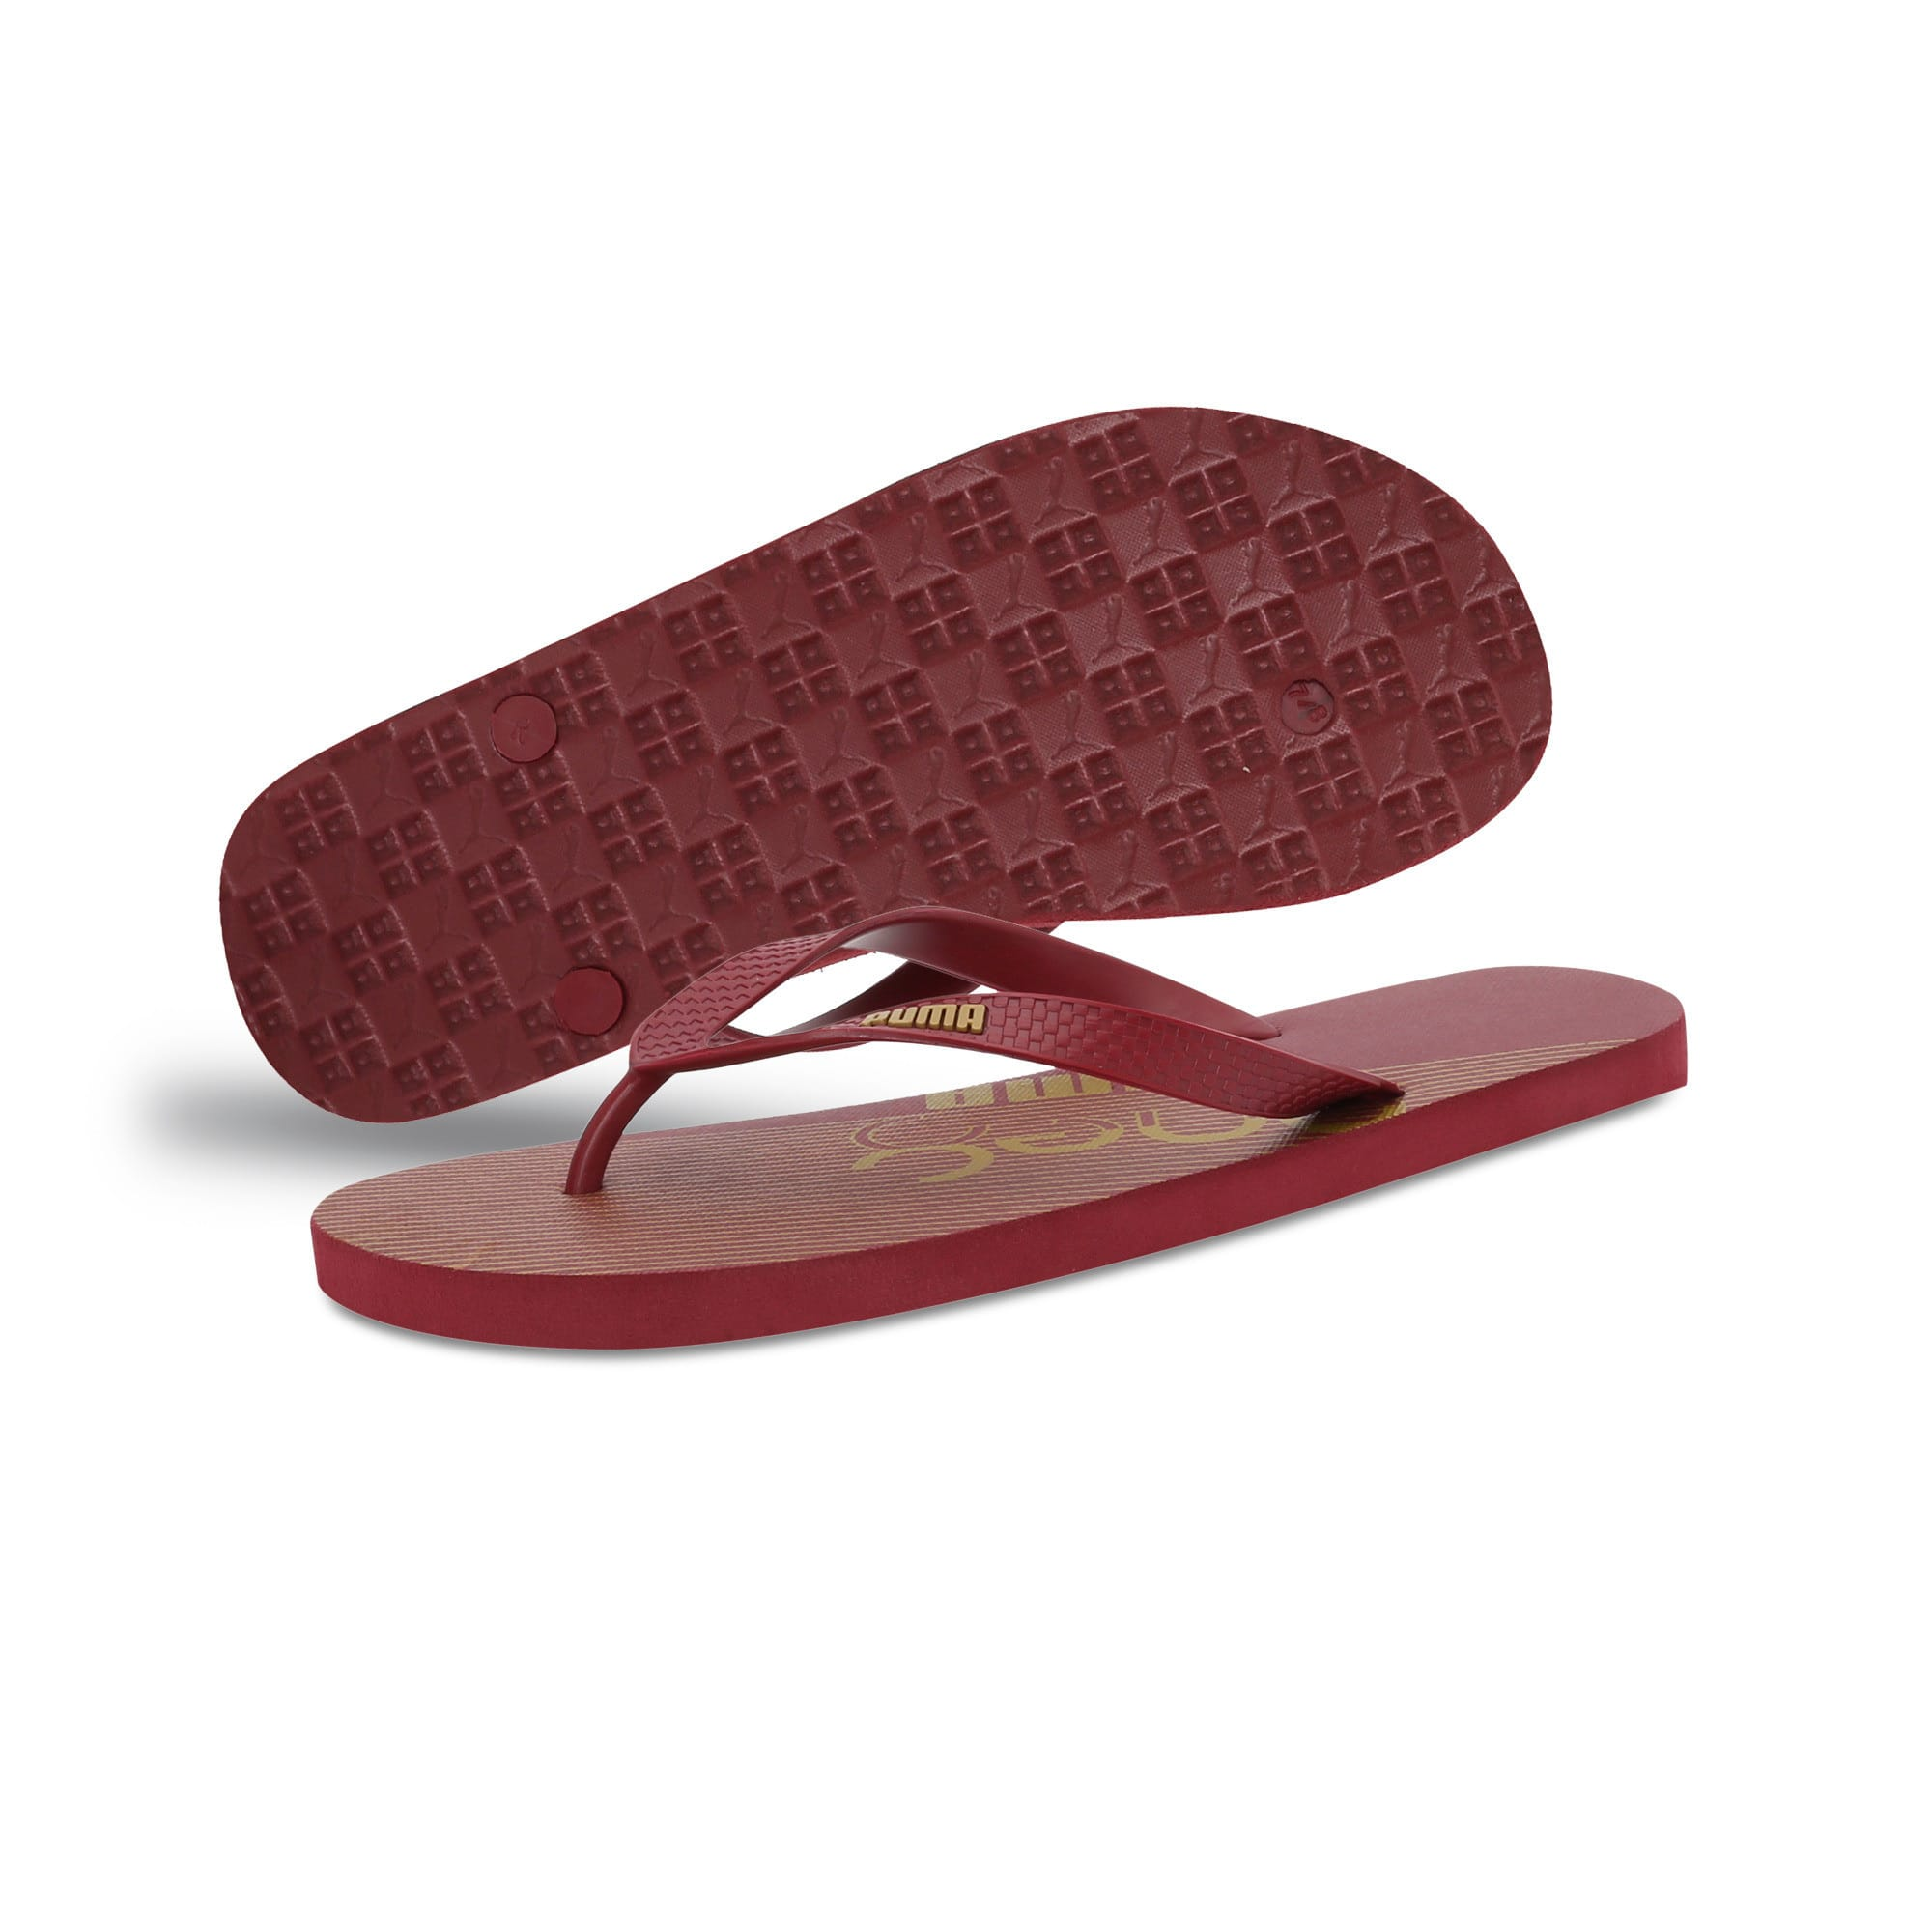 Thumbnail 2 of one8 FF IDP Unisex Flip Flops, Rhubarb-Puma Team Gold, medium-IND